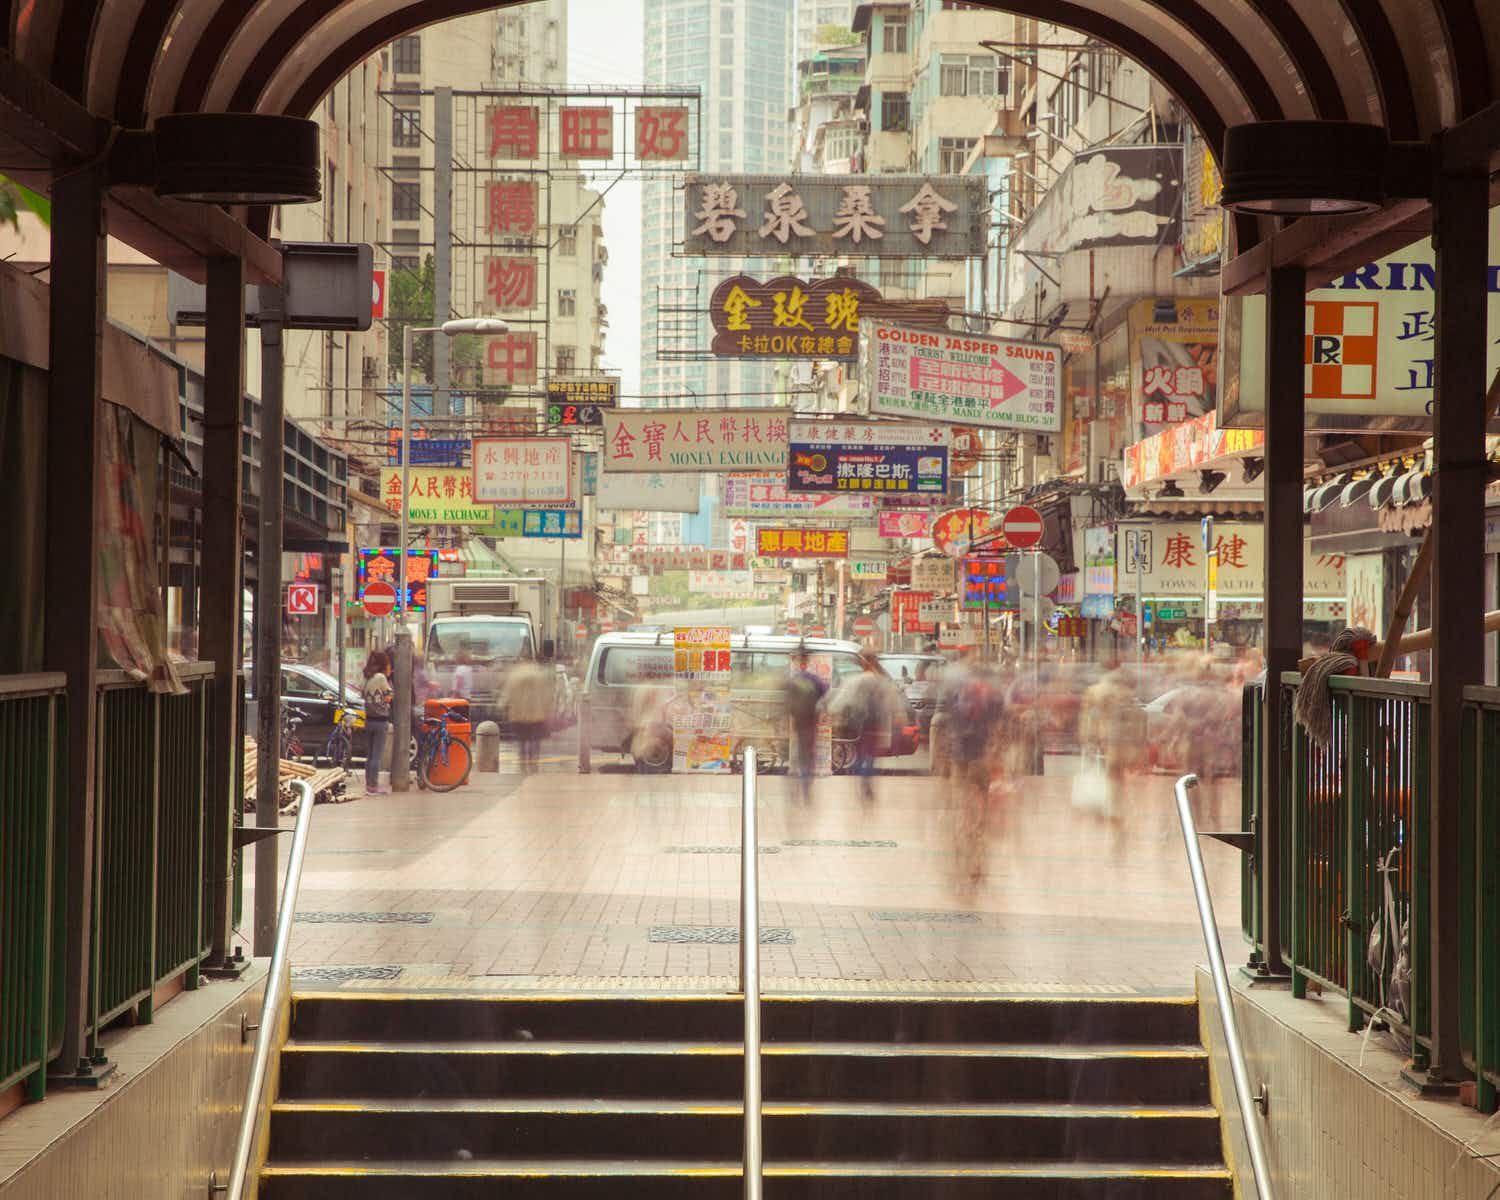 Blurred motion of people going down the stairs of underground crossing with numerous Chinese signs in the background